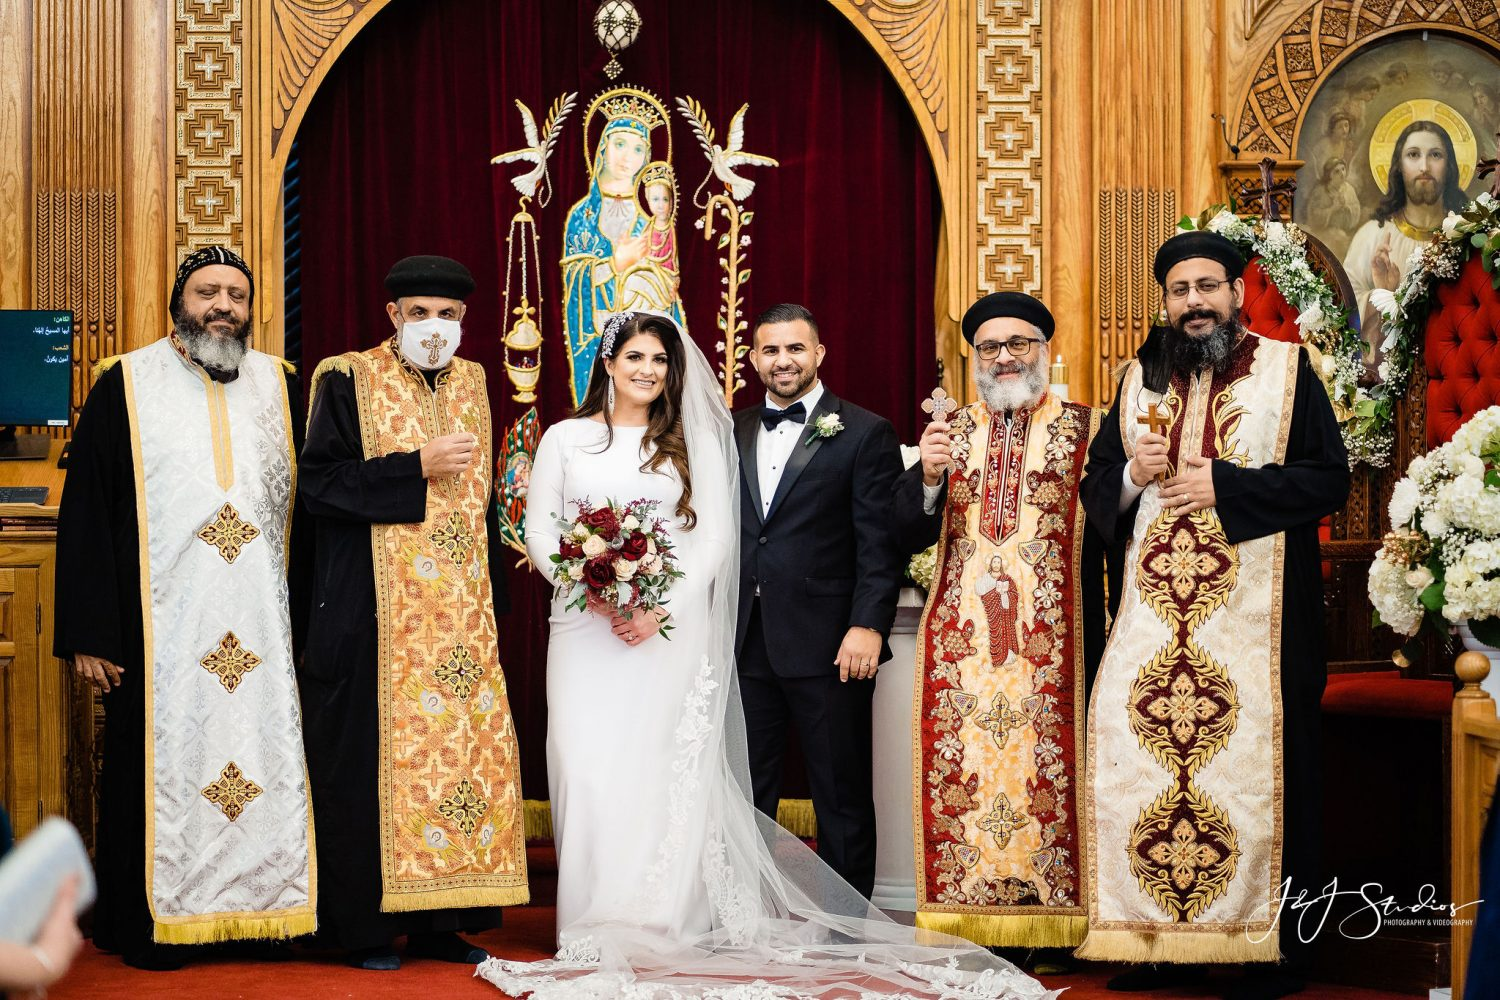 After ceremony Orthodox Wedding Session